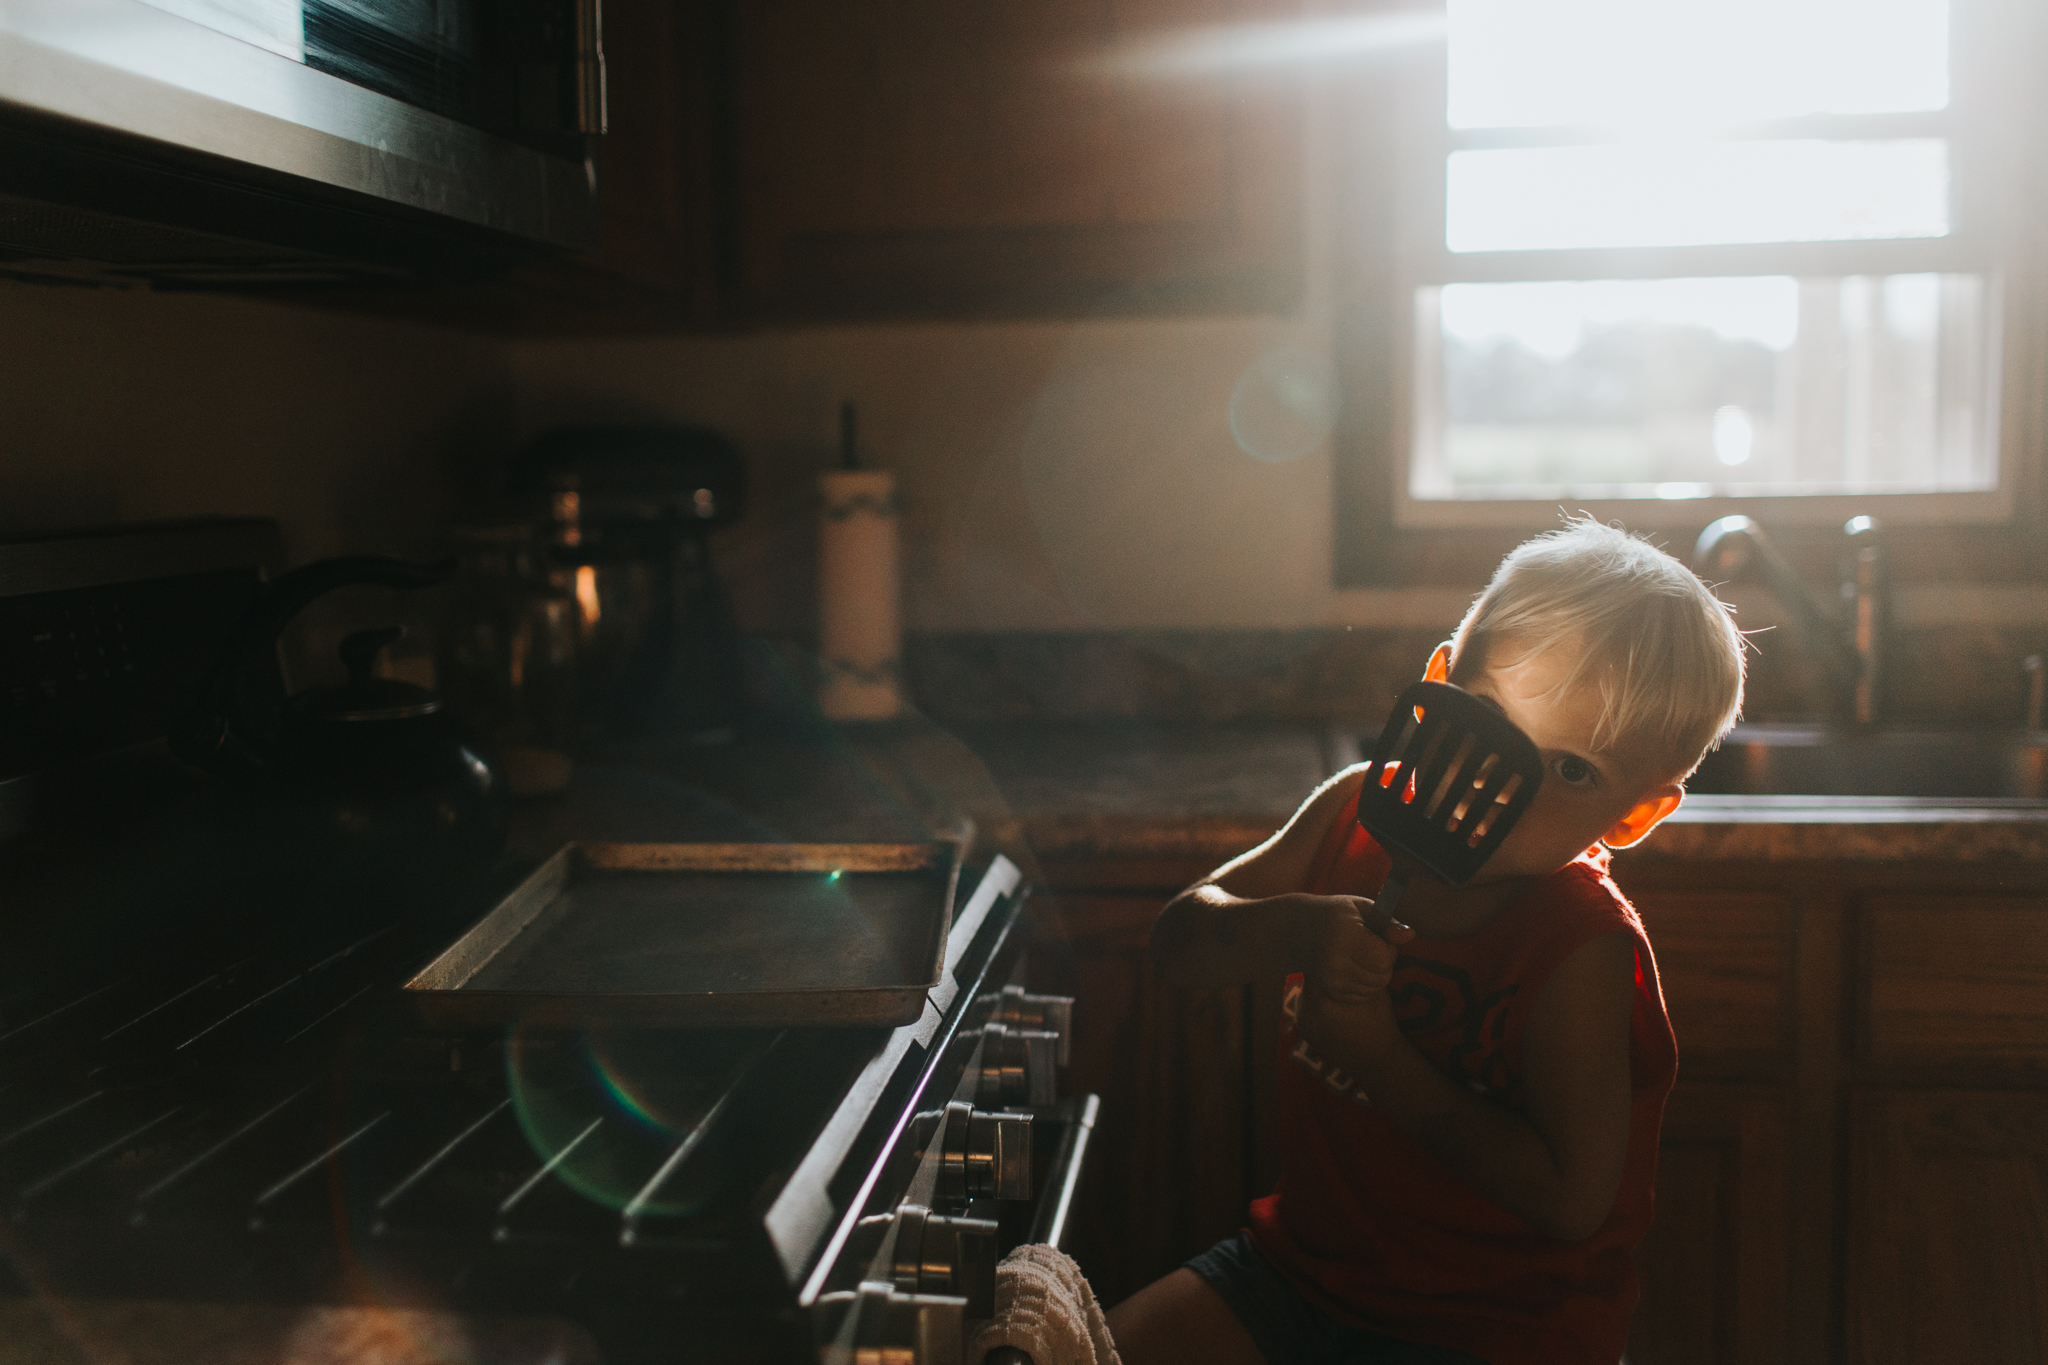 boy baking cookies with spatula in kitchen